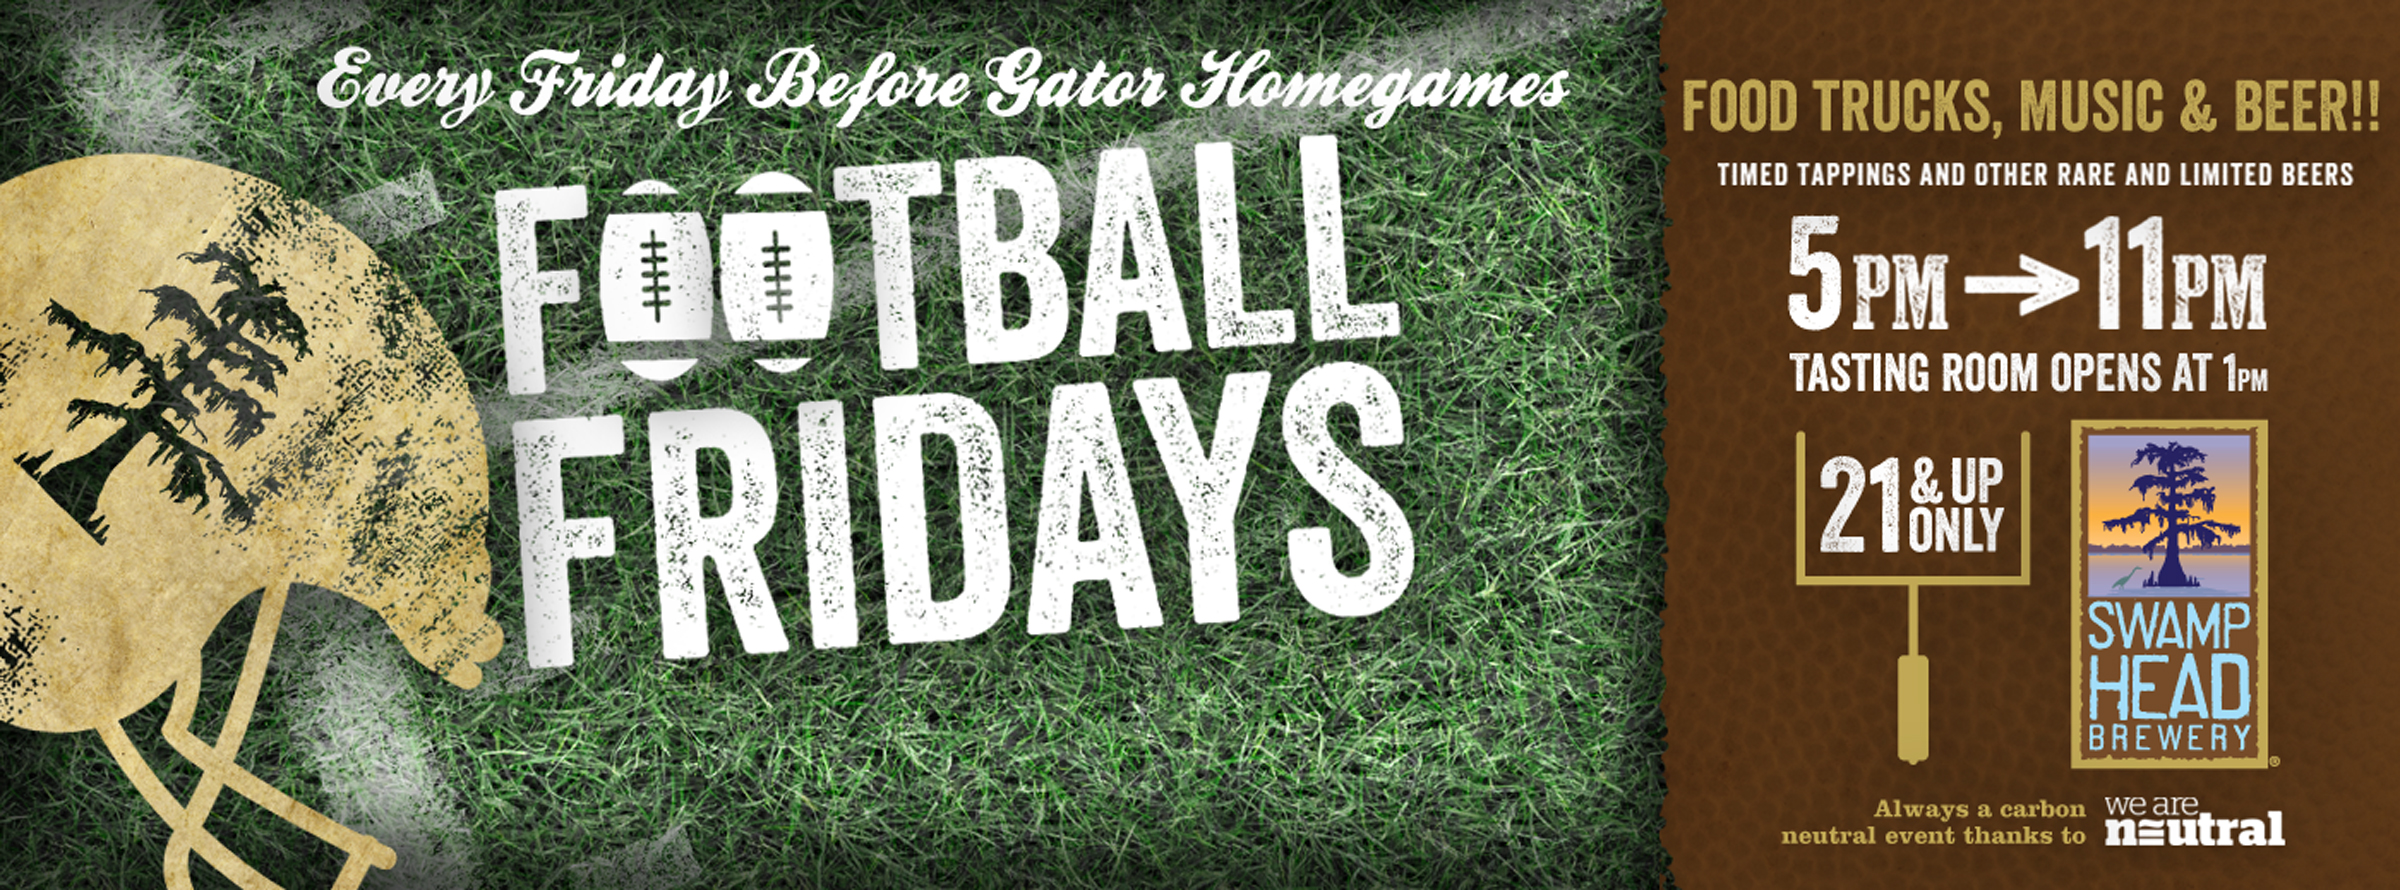 Football Friday Events